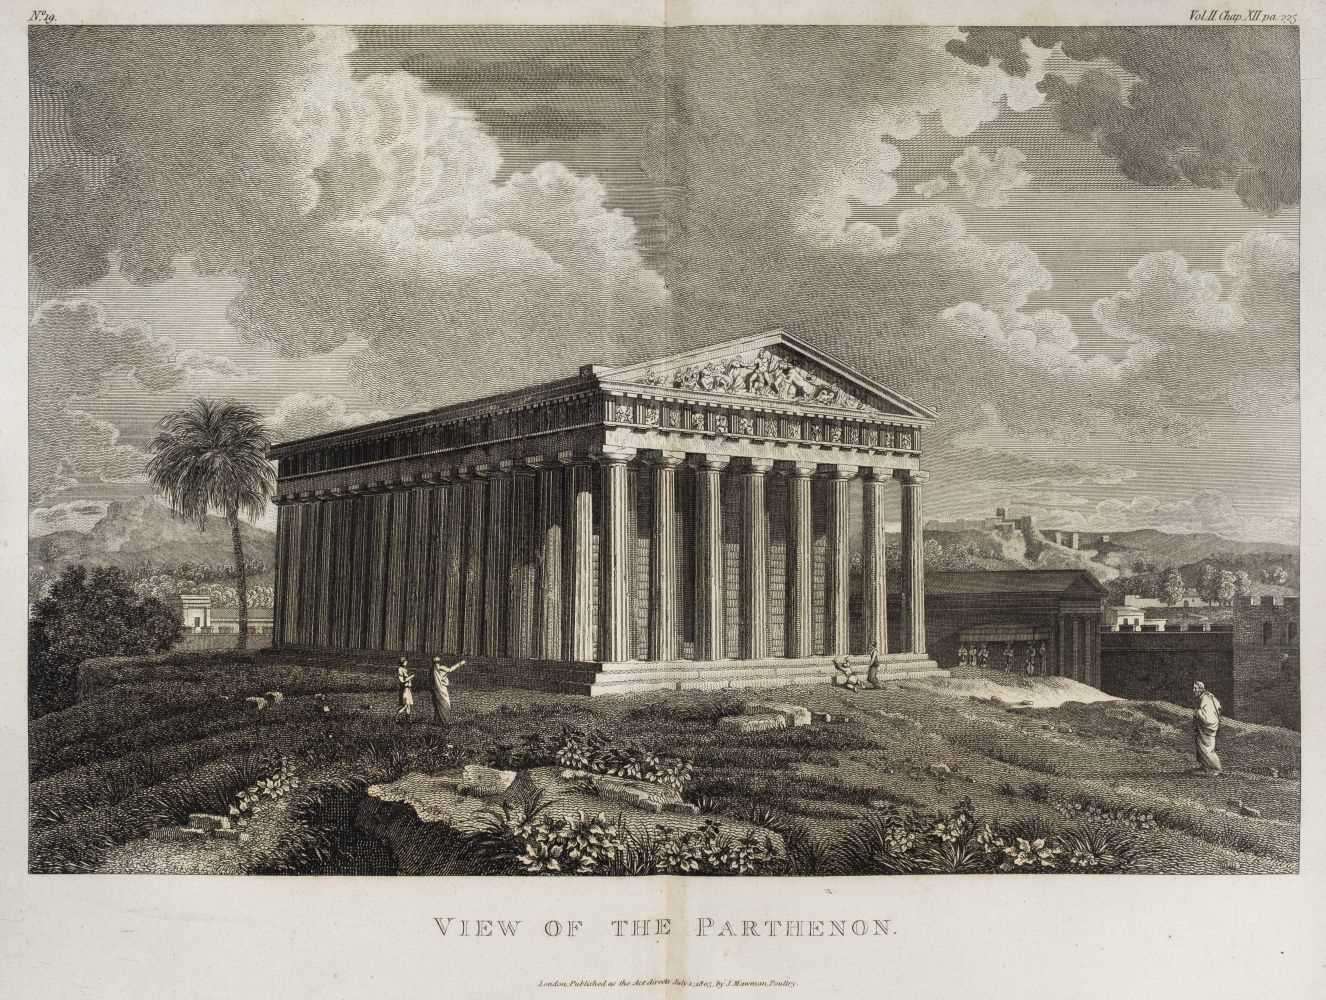 Lot 1 - Barthélemy (Jean Jacques). Travels of Anacharsis the Younger in Greece, 1806